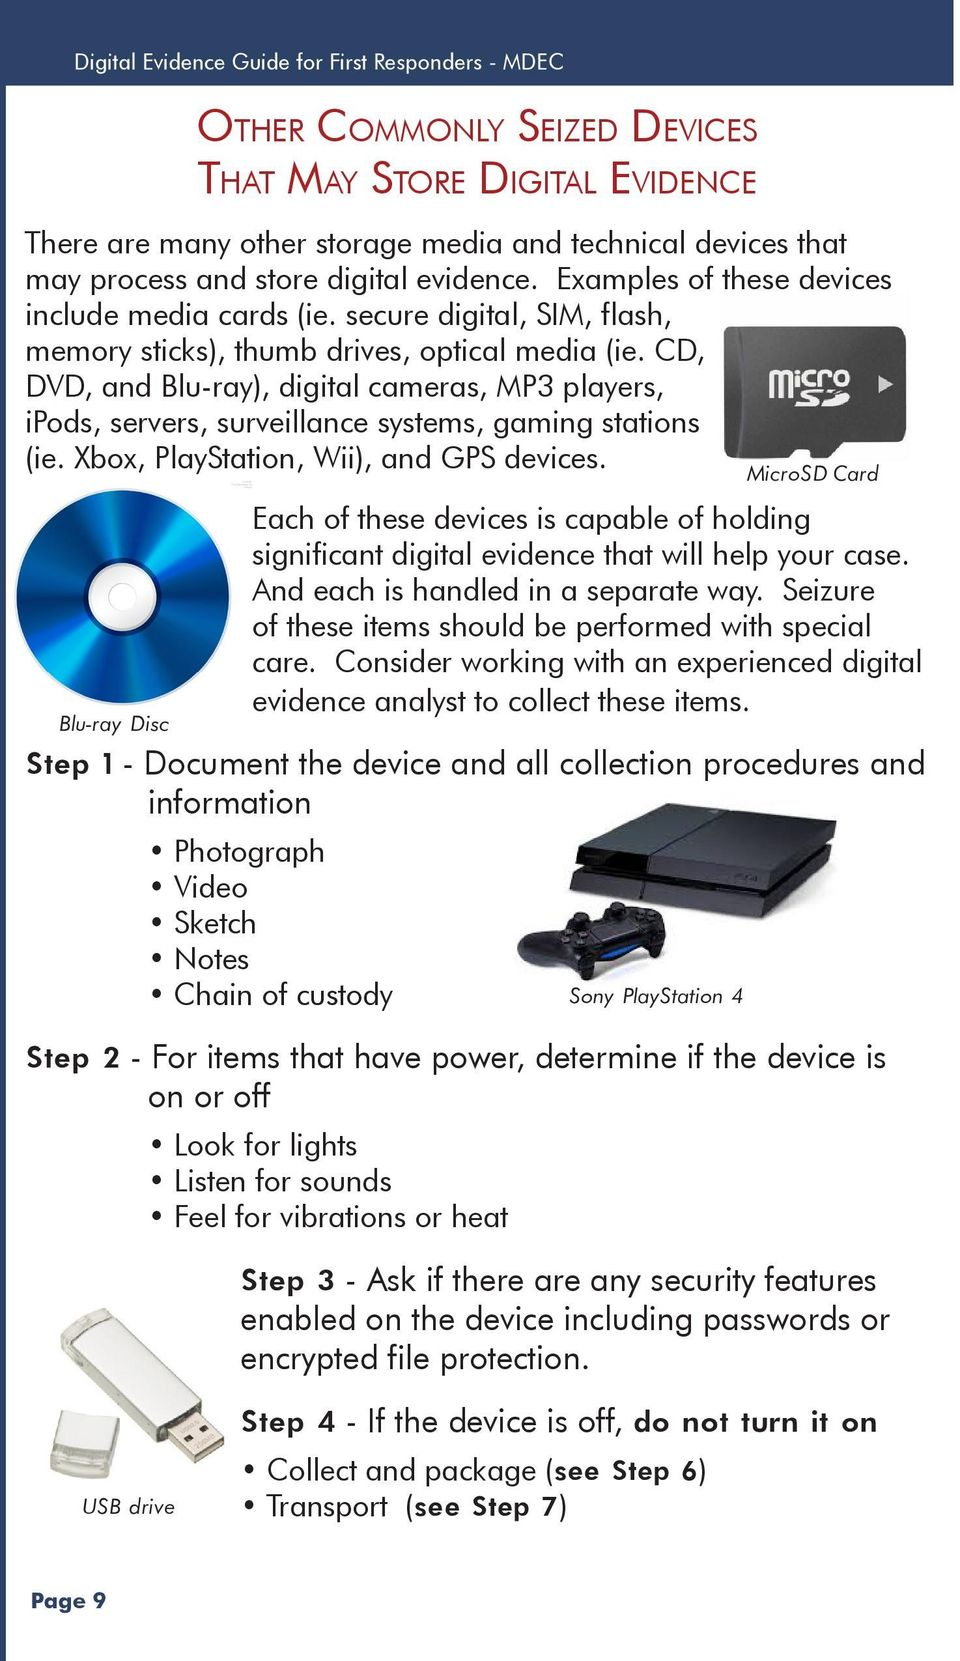 CD, DVD, and Blu-ray), digital cameras, MP3 players, ipods, servers, surveillance systems, gaming stations (ie. Xbox, PlayStation, Wii), and GPS devices.